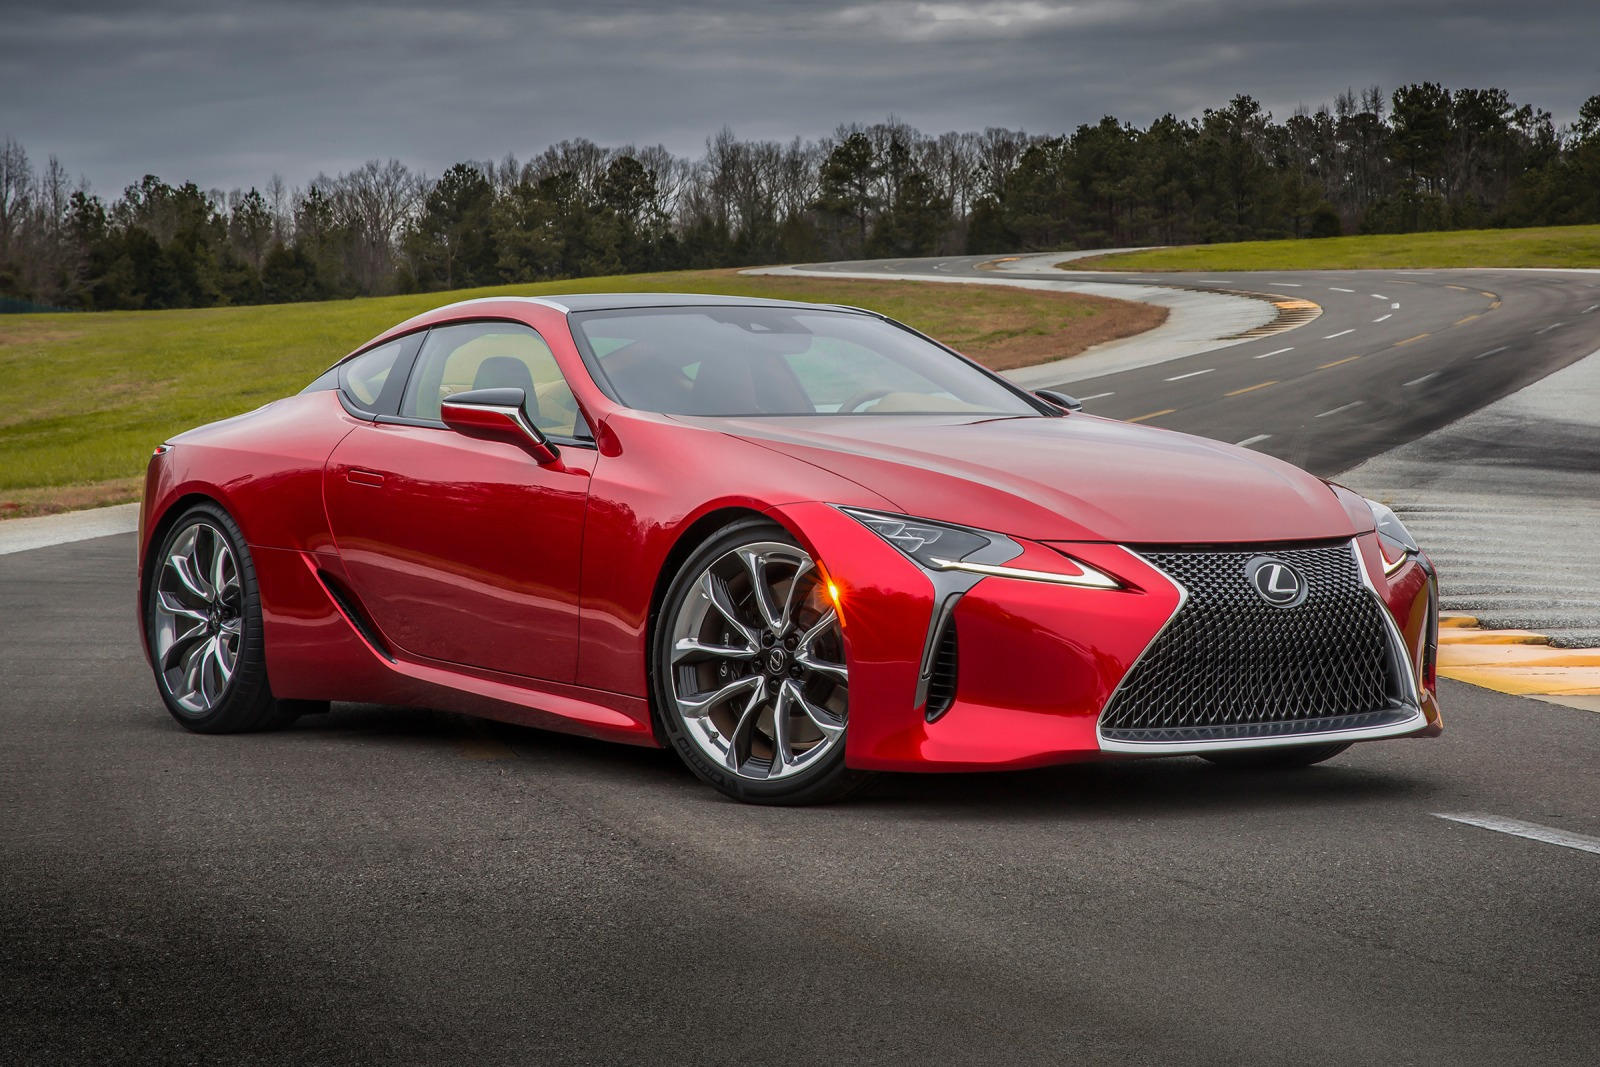 Lc 500 Cost Lc 500 Lexus Coupe